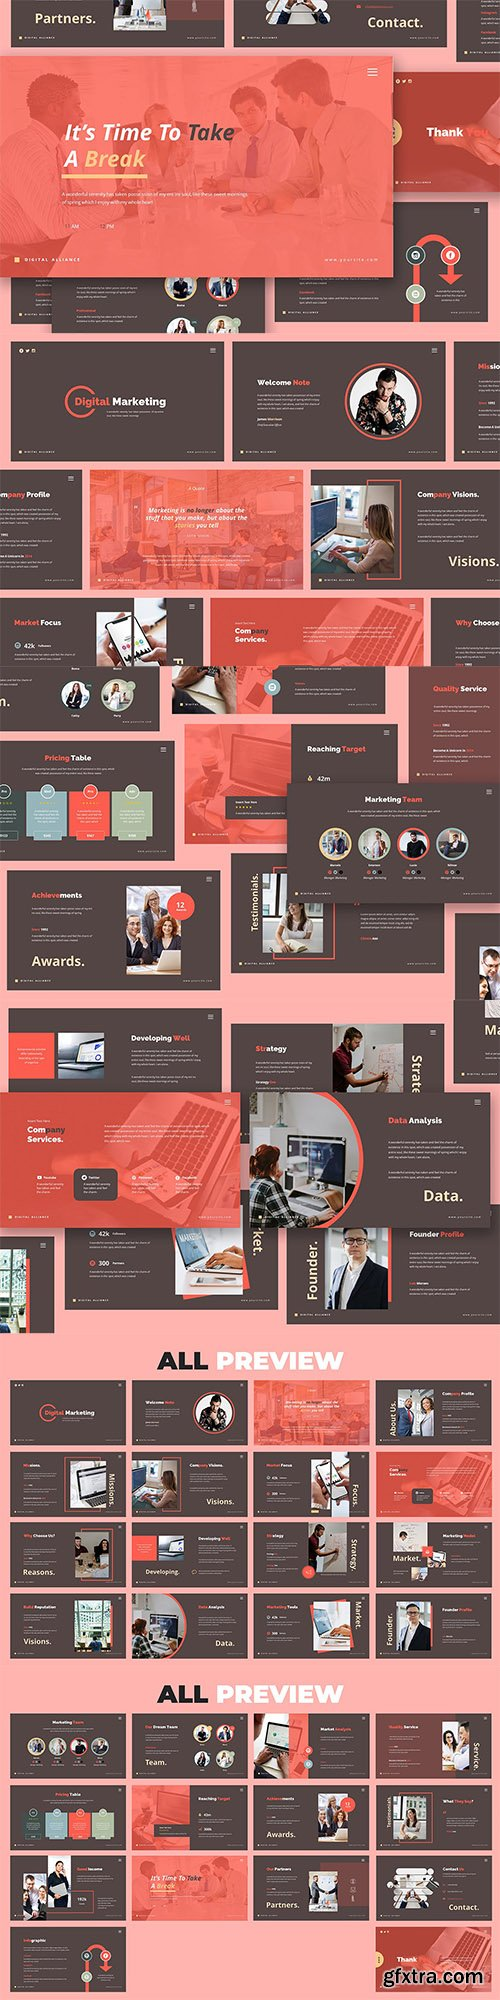 Digital Marketing Powerpoint, Keynote and Google Slides Templates